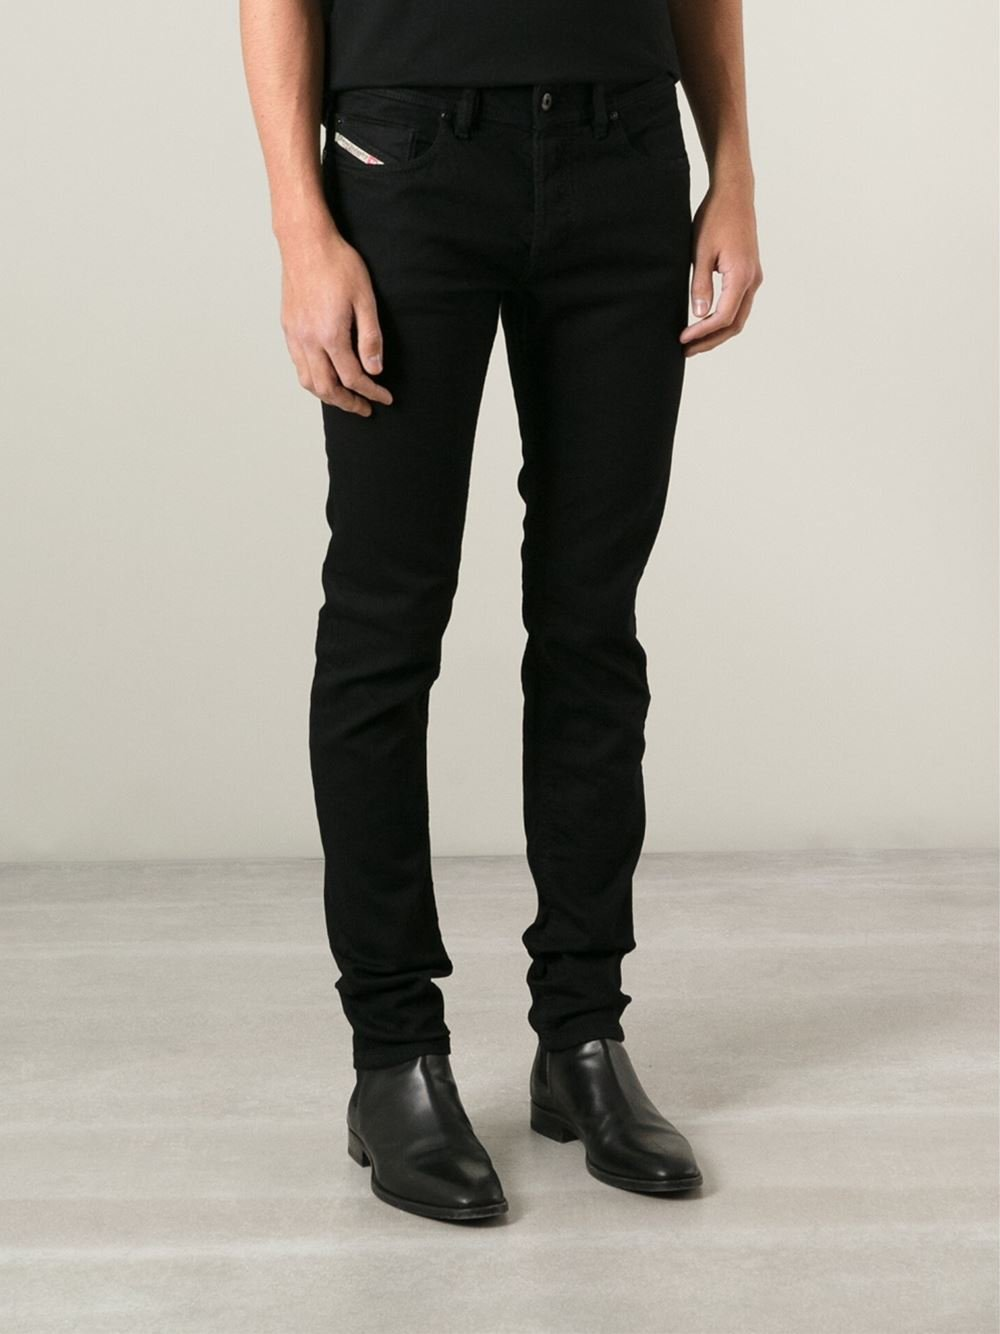 Sale Purchase Sleenker skinny jeans - Black Diesel Outlet Purchase Under 50 Dollars Sale Low Price Fee Shipping NJu37w